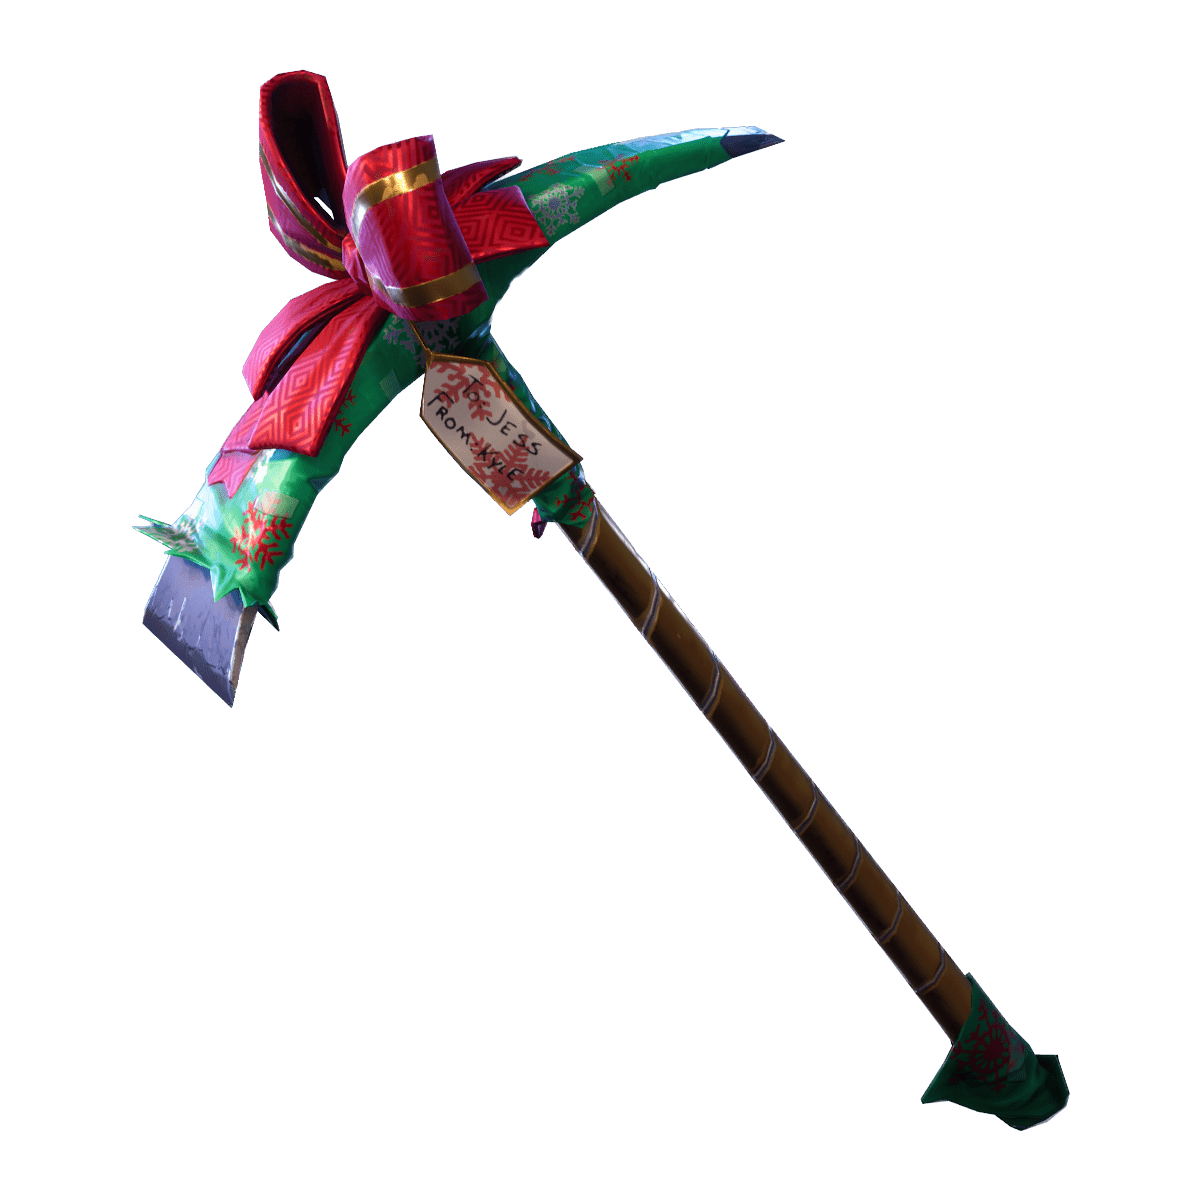 Fortnite Pickaxe - You Shouldn't Have!